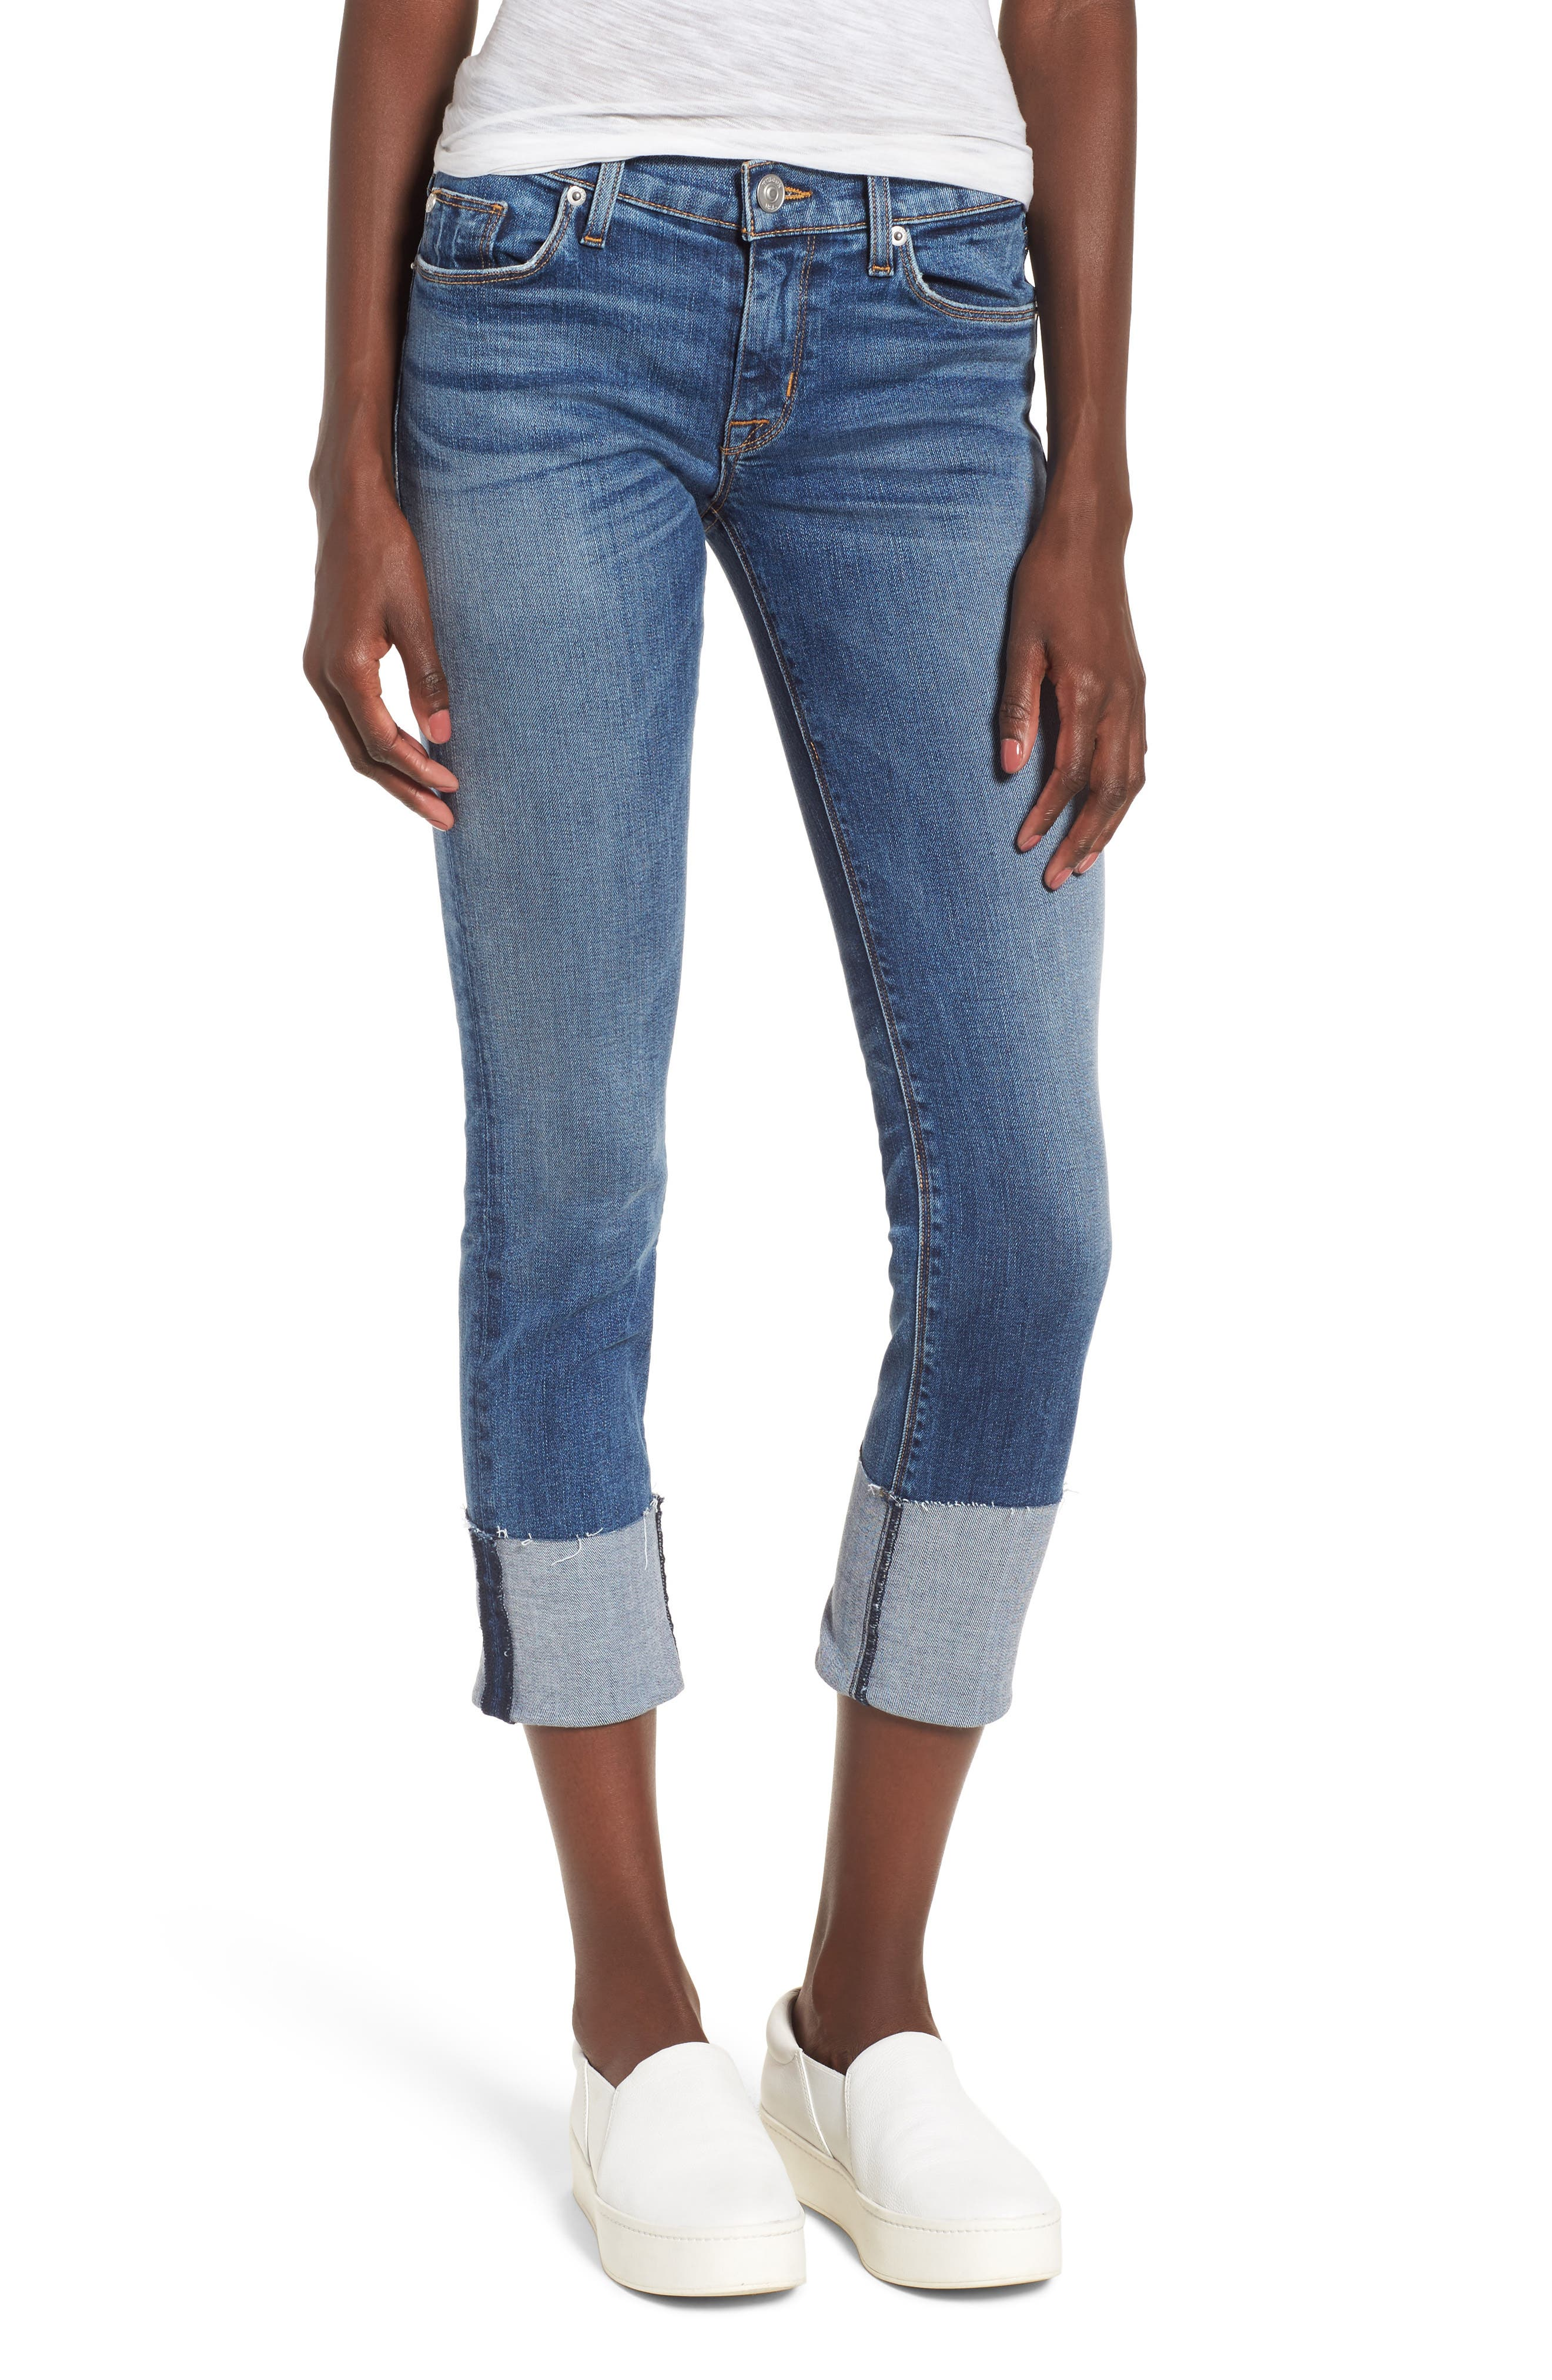 HUDSON JEANS,                             Tally Cuffed Crop Skinny Jeans,                             Main thumbnail 1, color,                             426